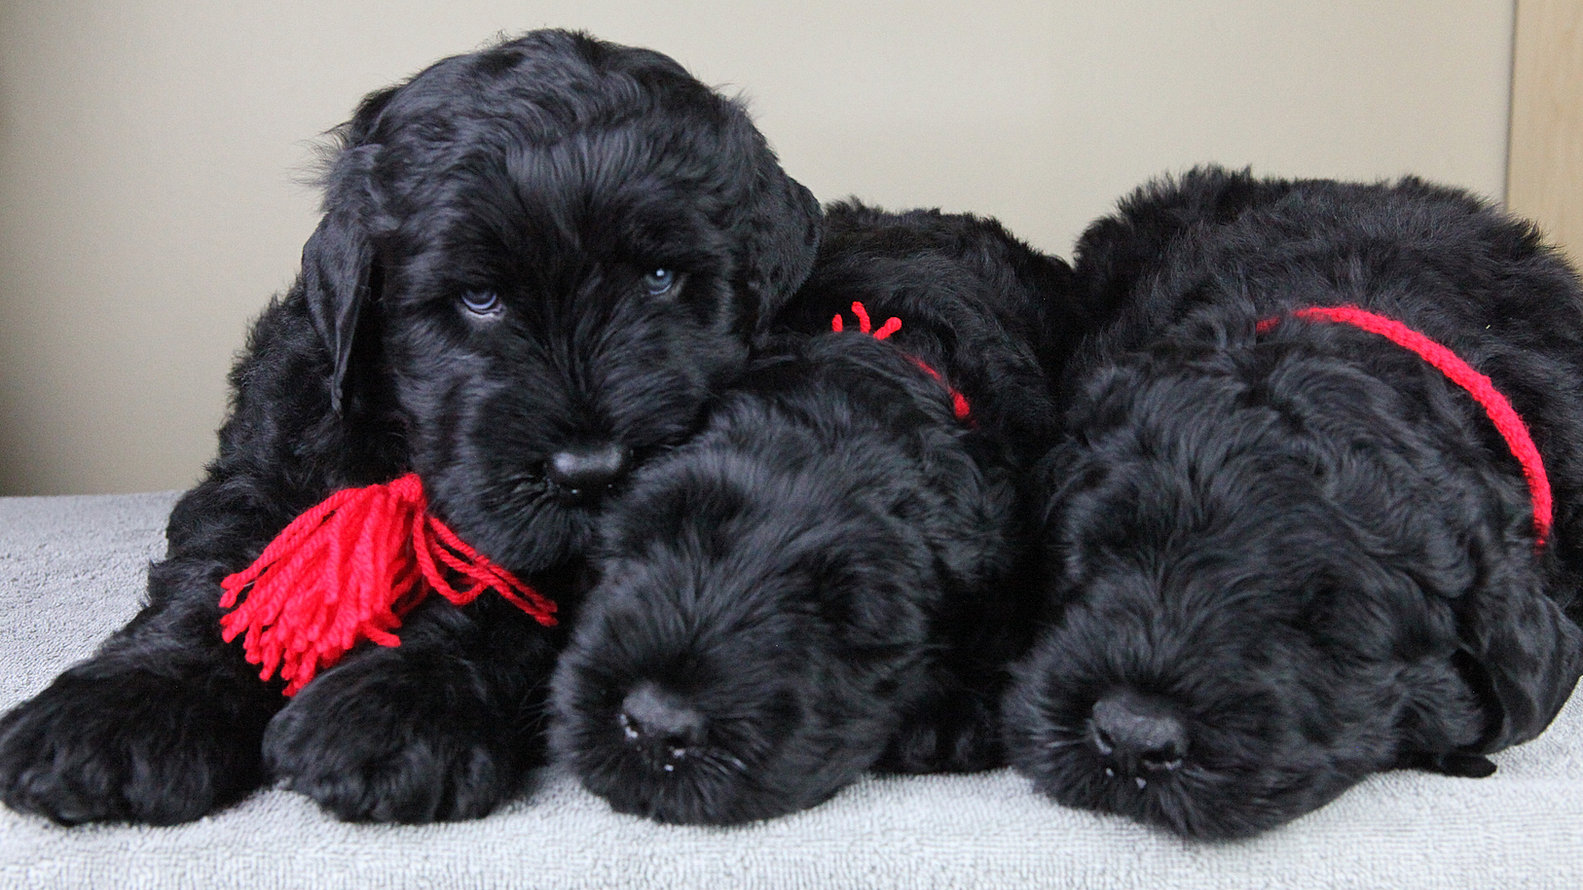 Terrier russian black – Dogs our friends photo blog